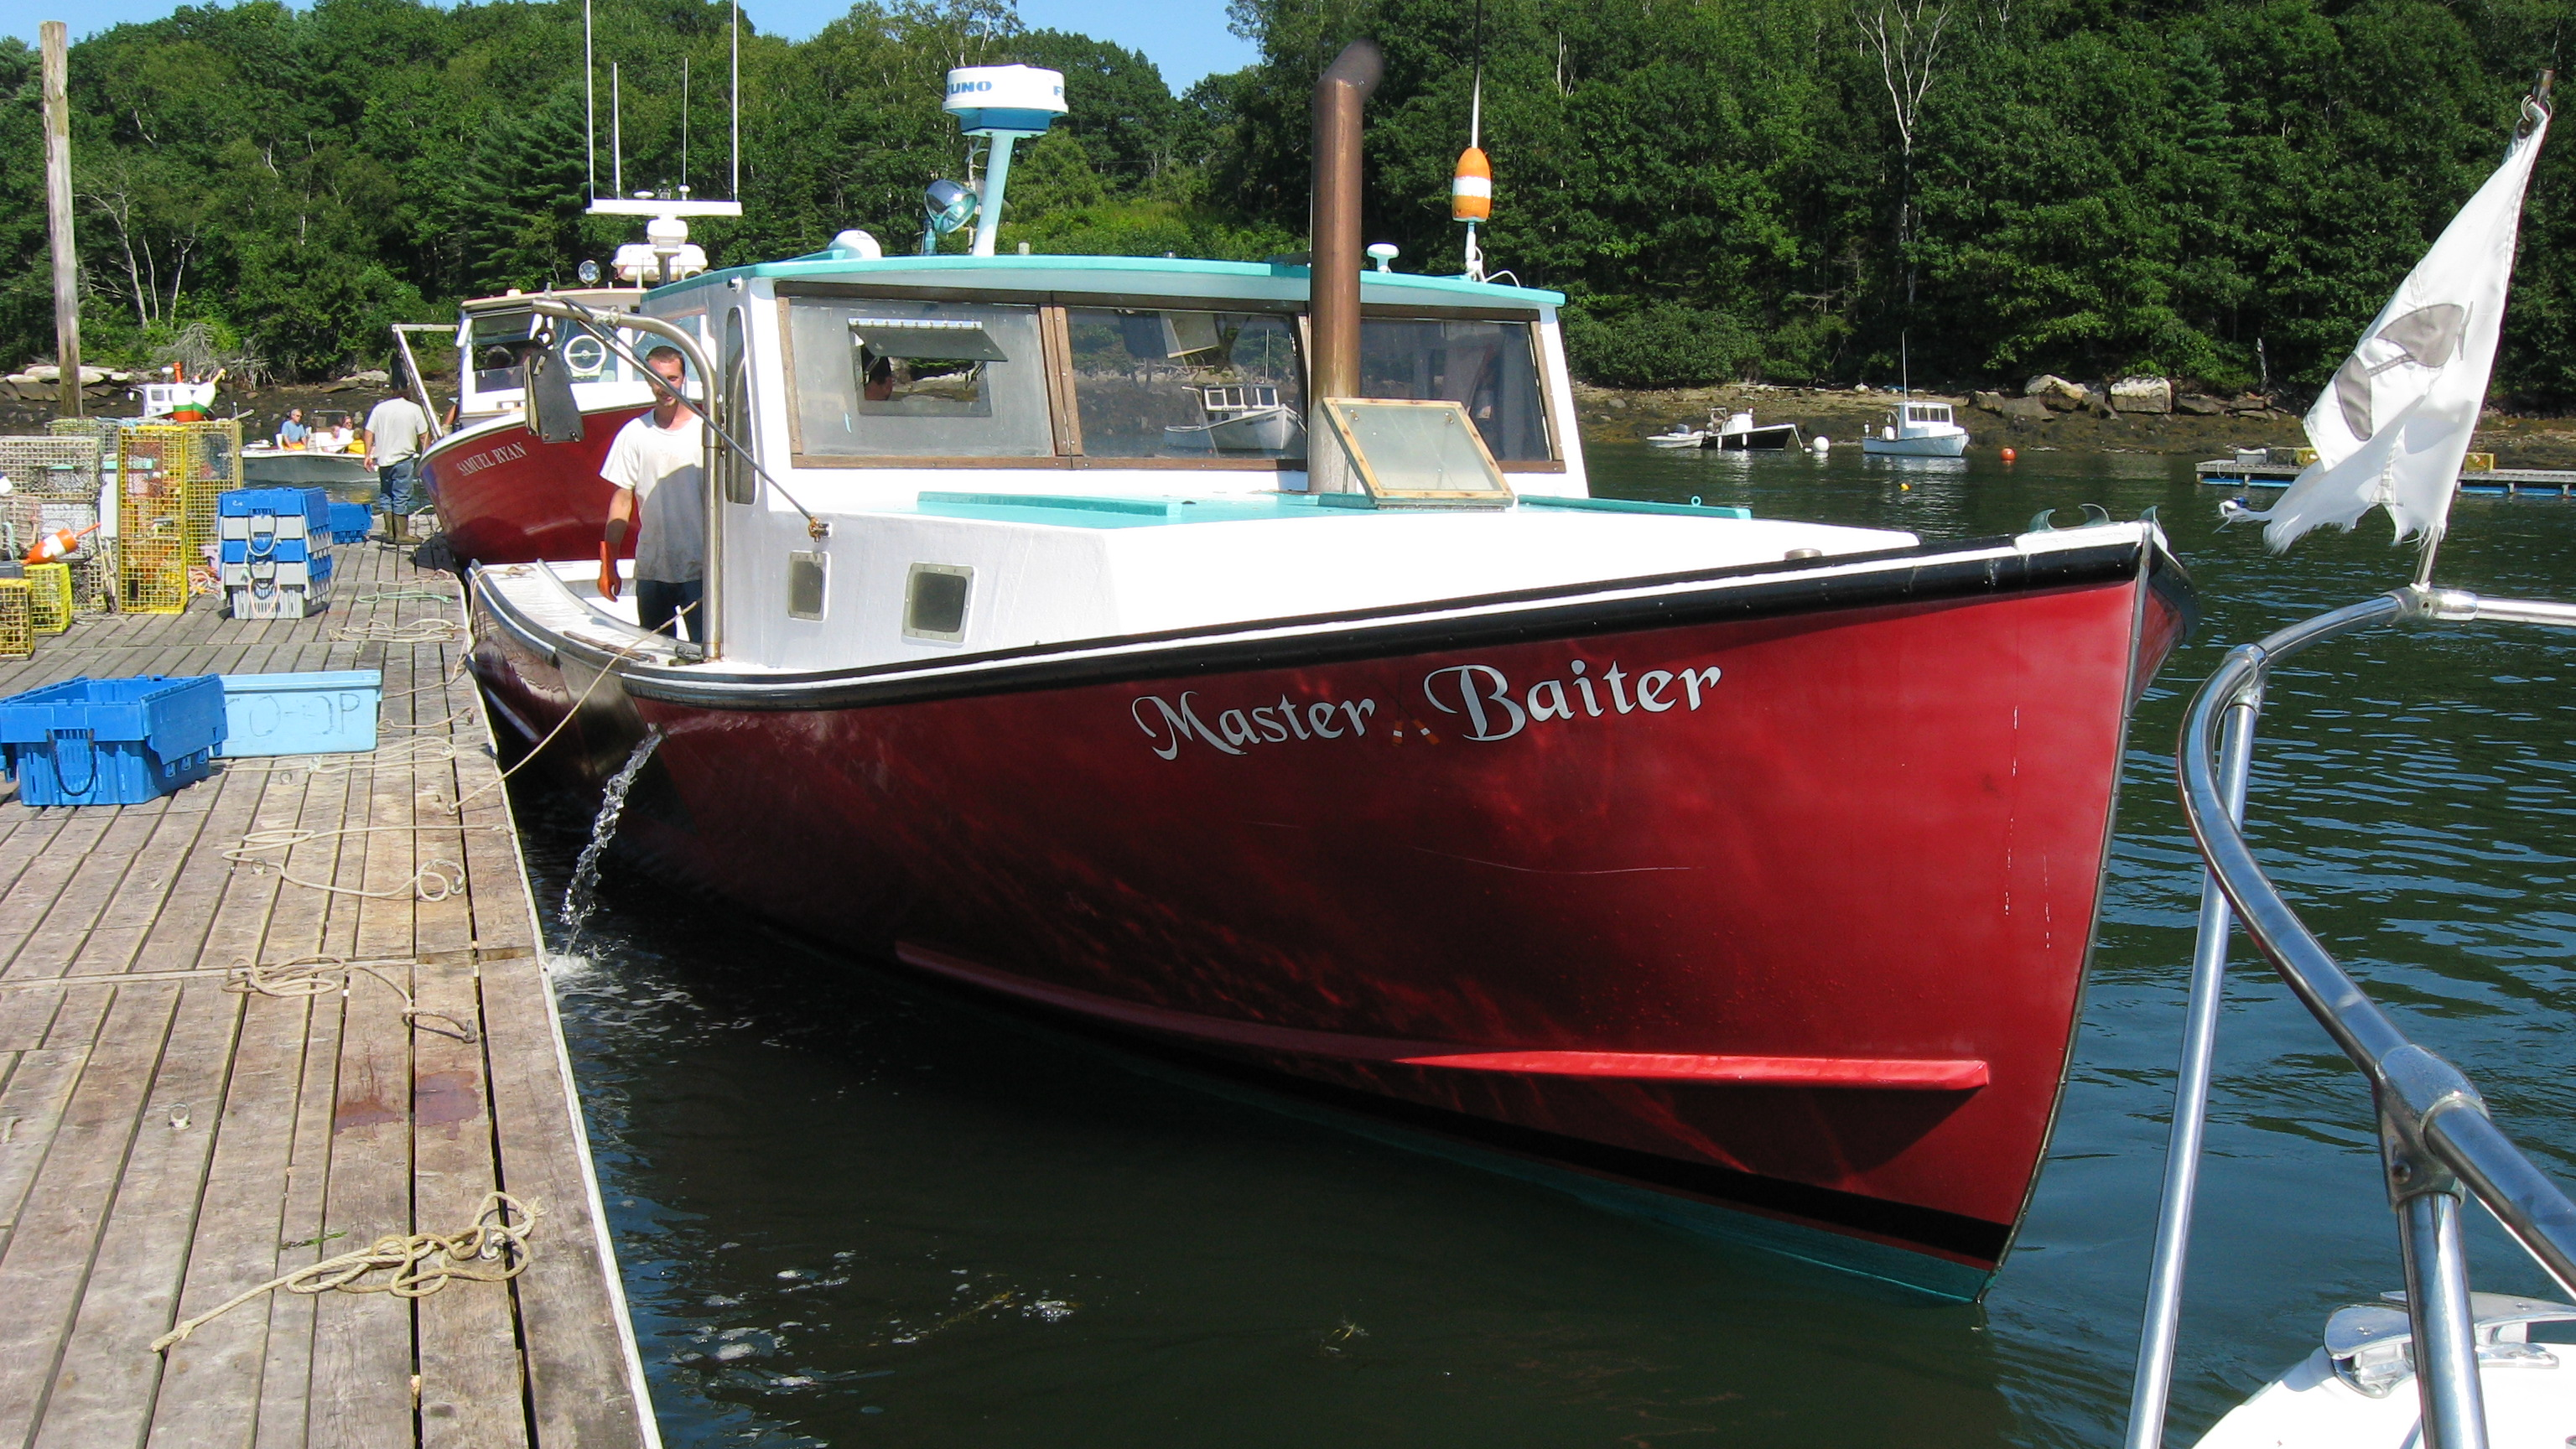 Funny Boat Name by Athronos on DeviantArt